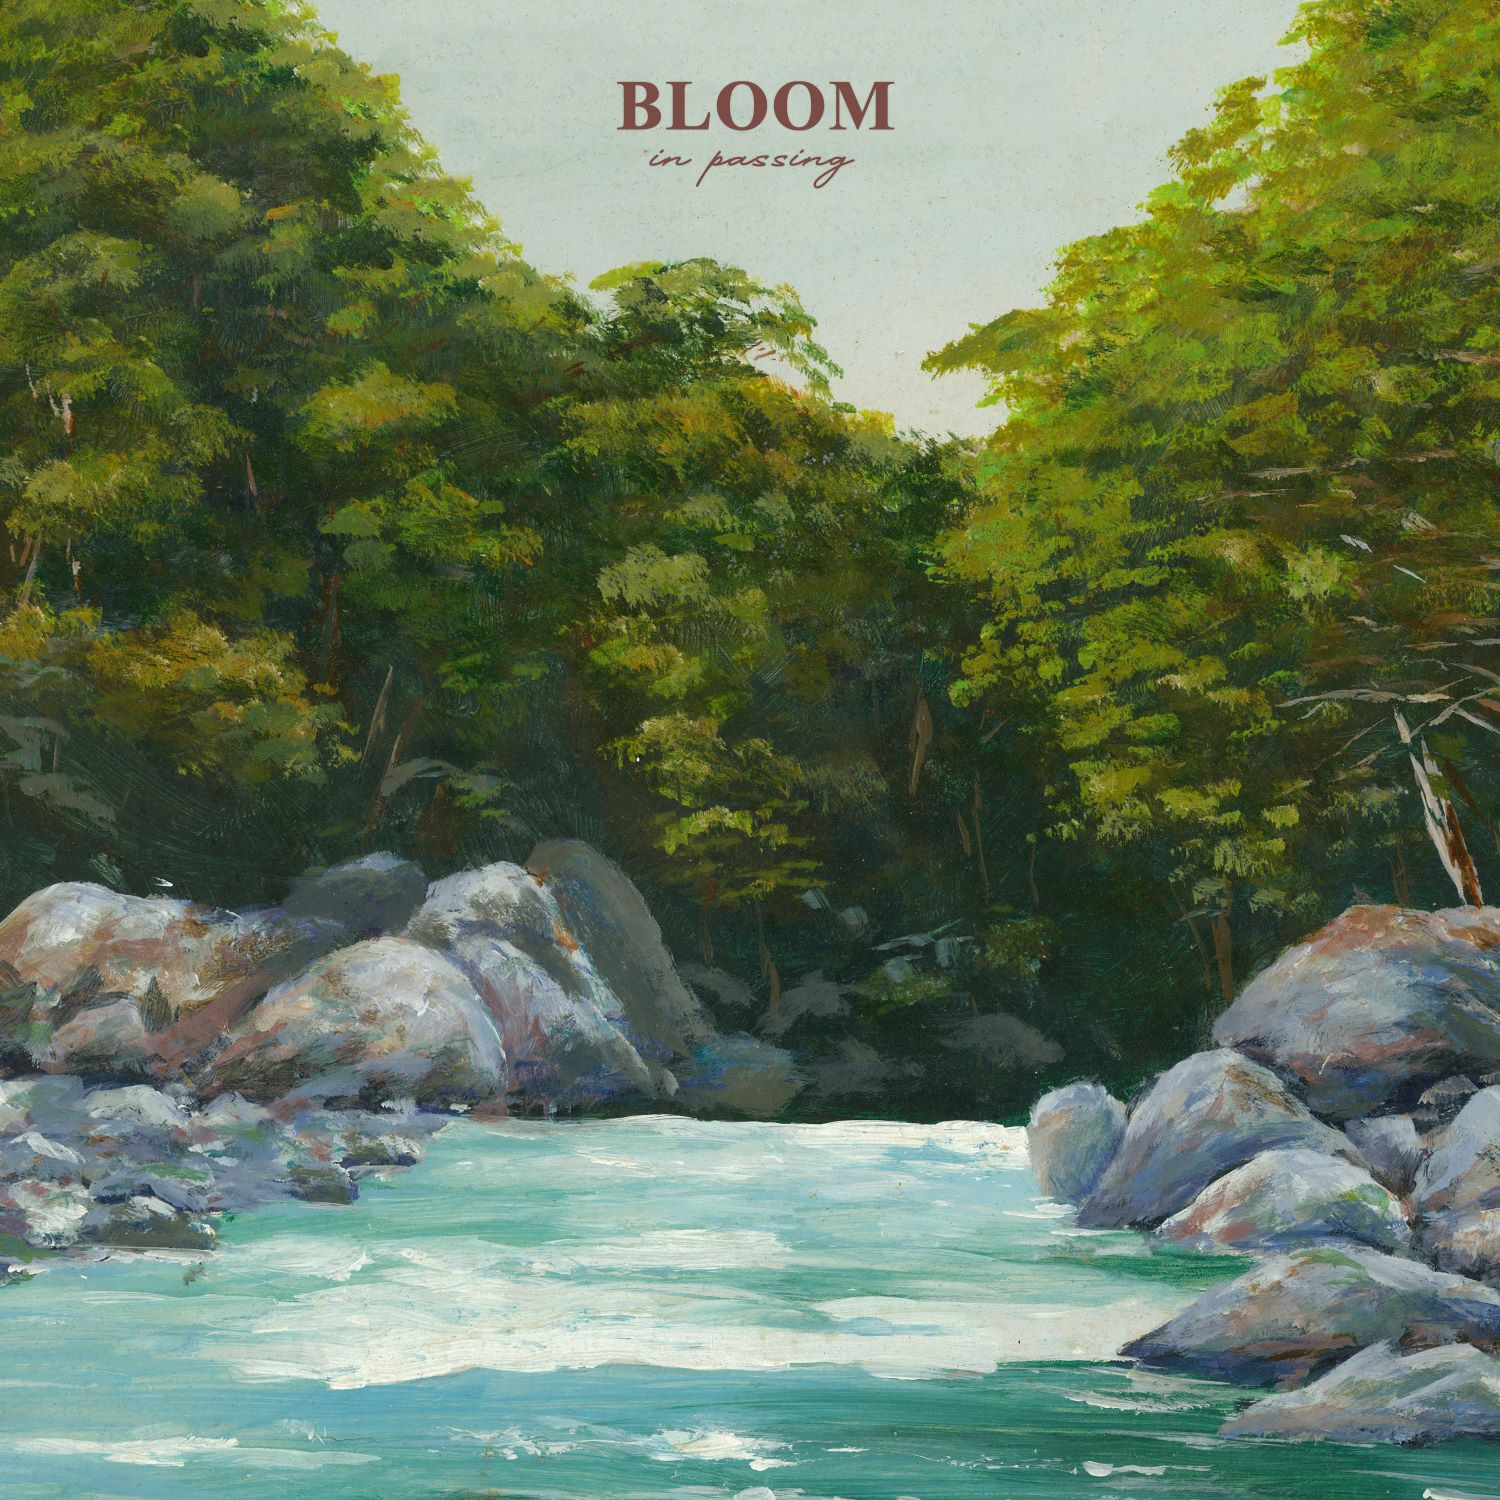 Bloom In Passing artwork